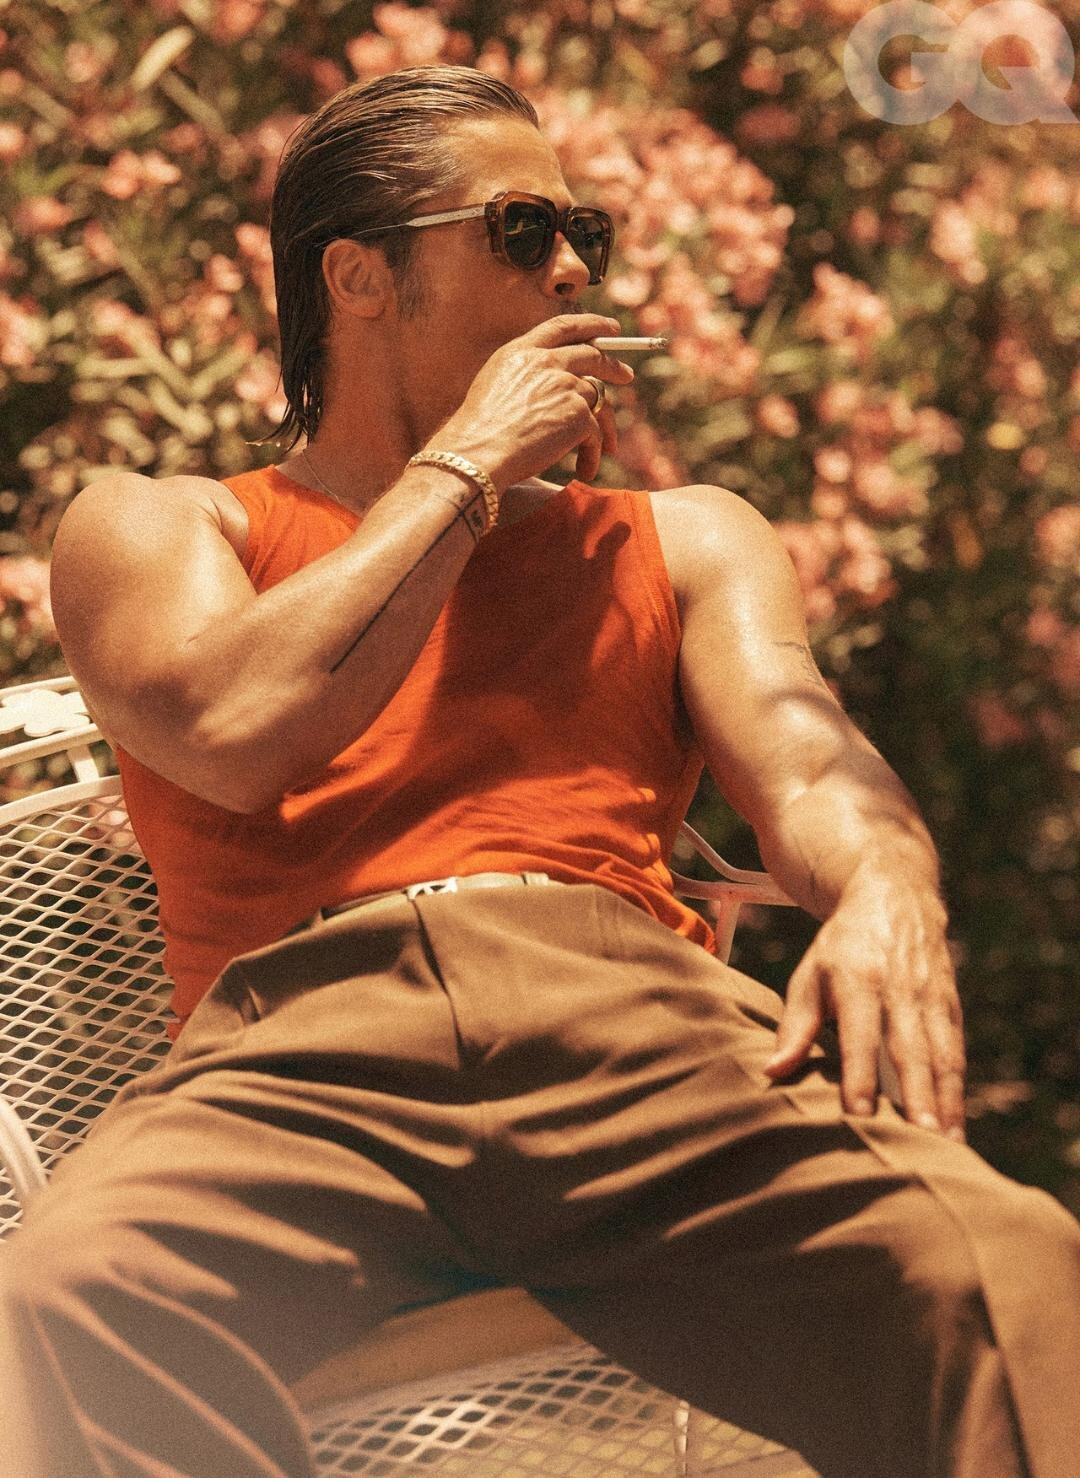 BRAD PITT IN CUSTOM BELT BY A. JASON ROSS STYLED BY GEORGE CORTINA  PHOTOGRAPHS BY LACHLAN BAILEY